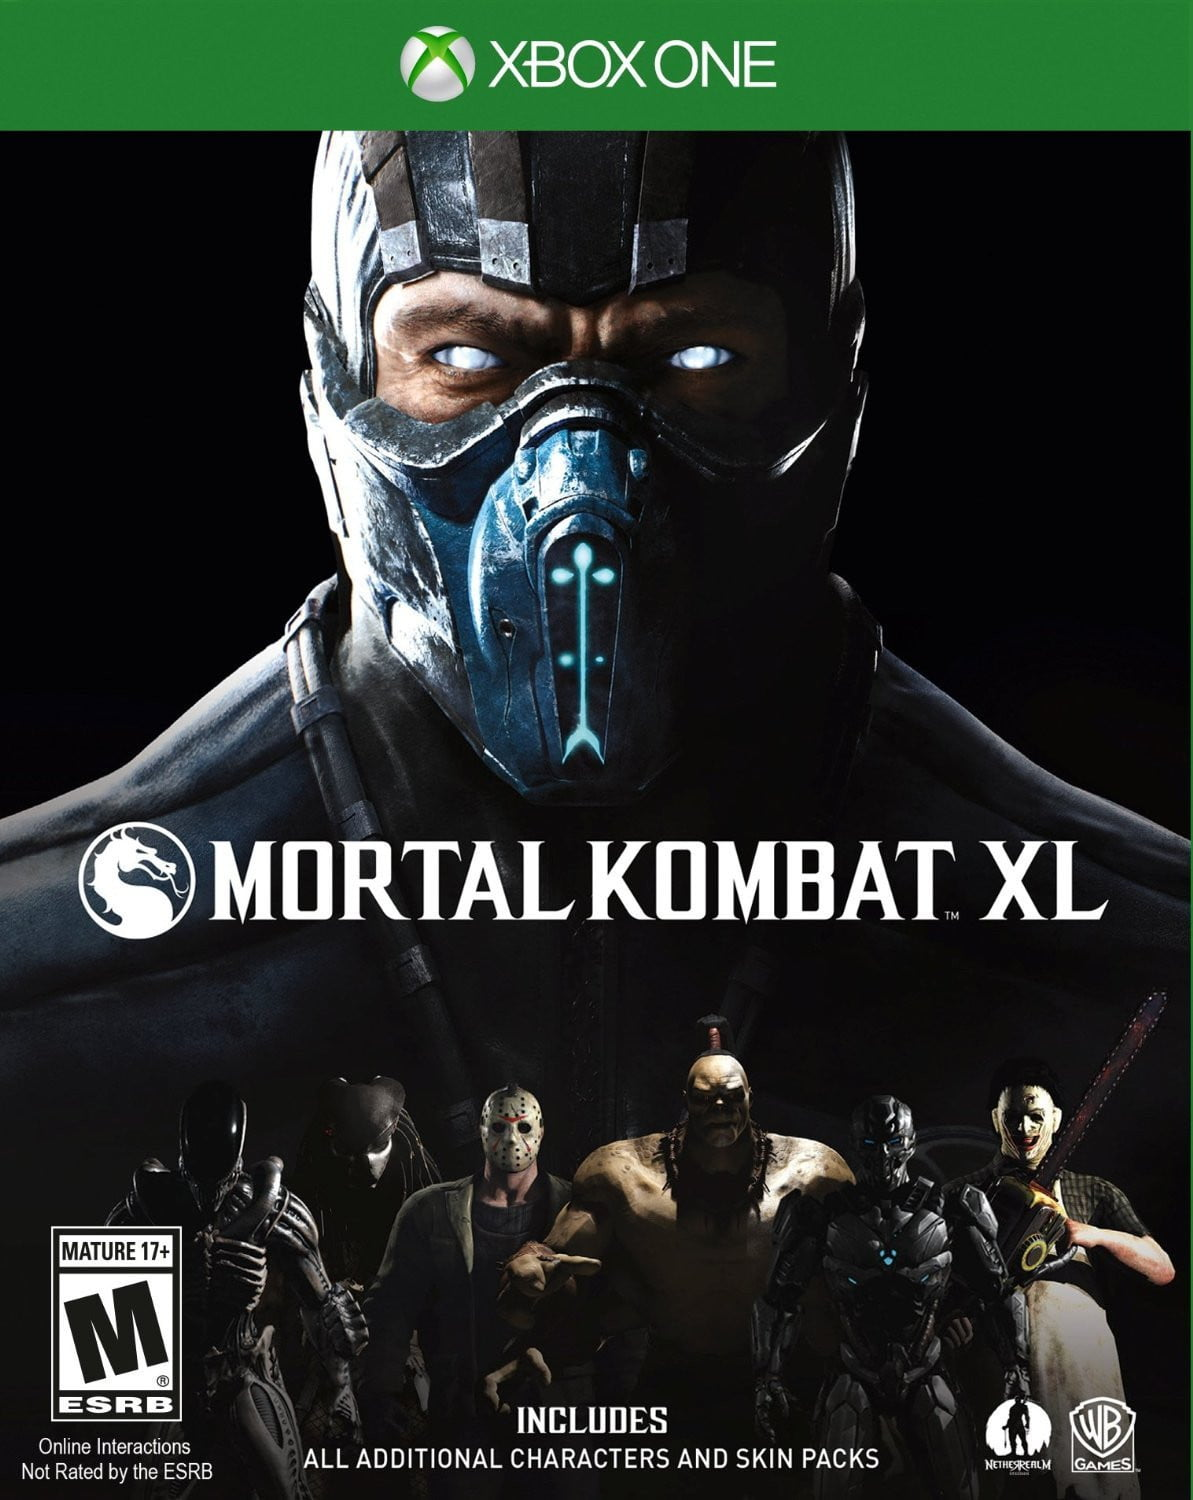 Buy Mortal Kombat XL (XBOX ONE) XBOX ONE in Egypt - Shamy Stores